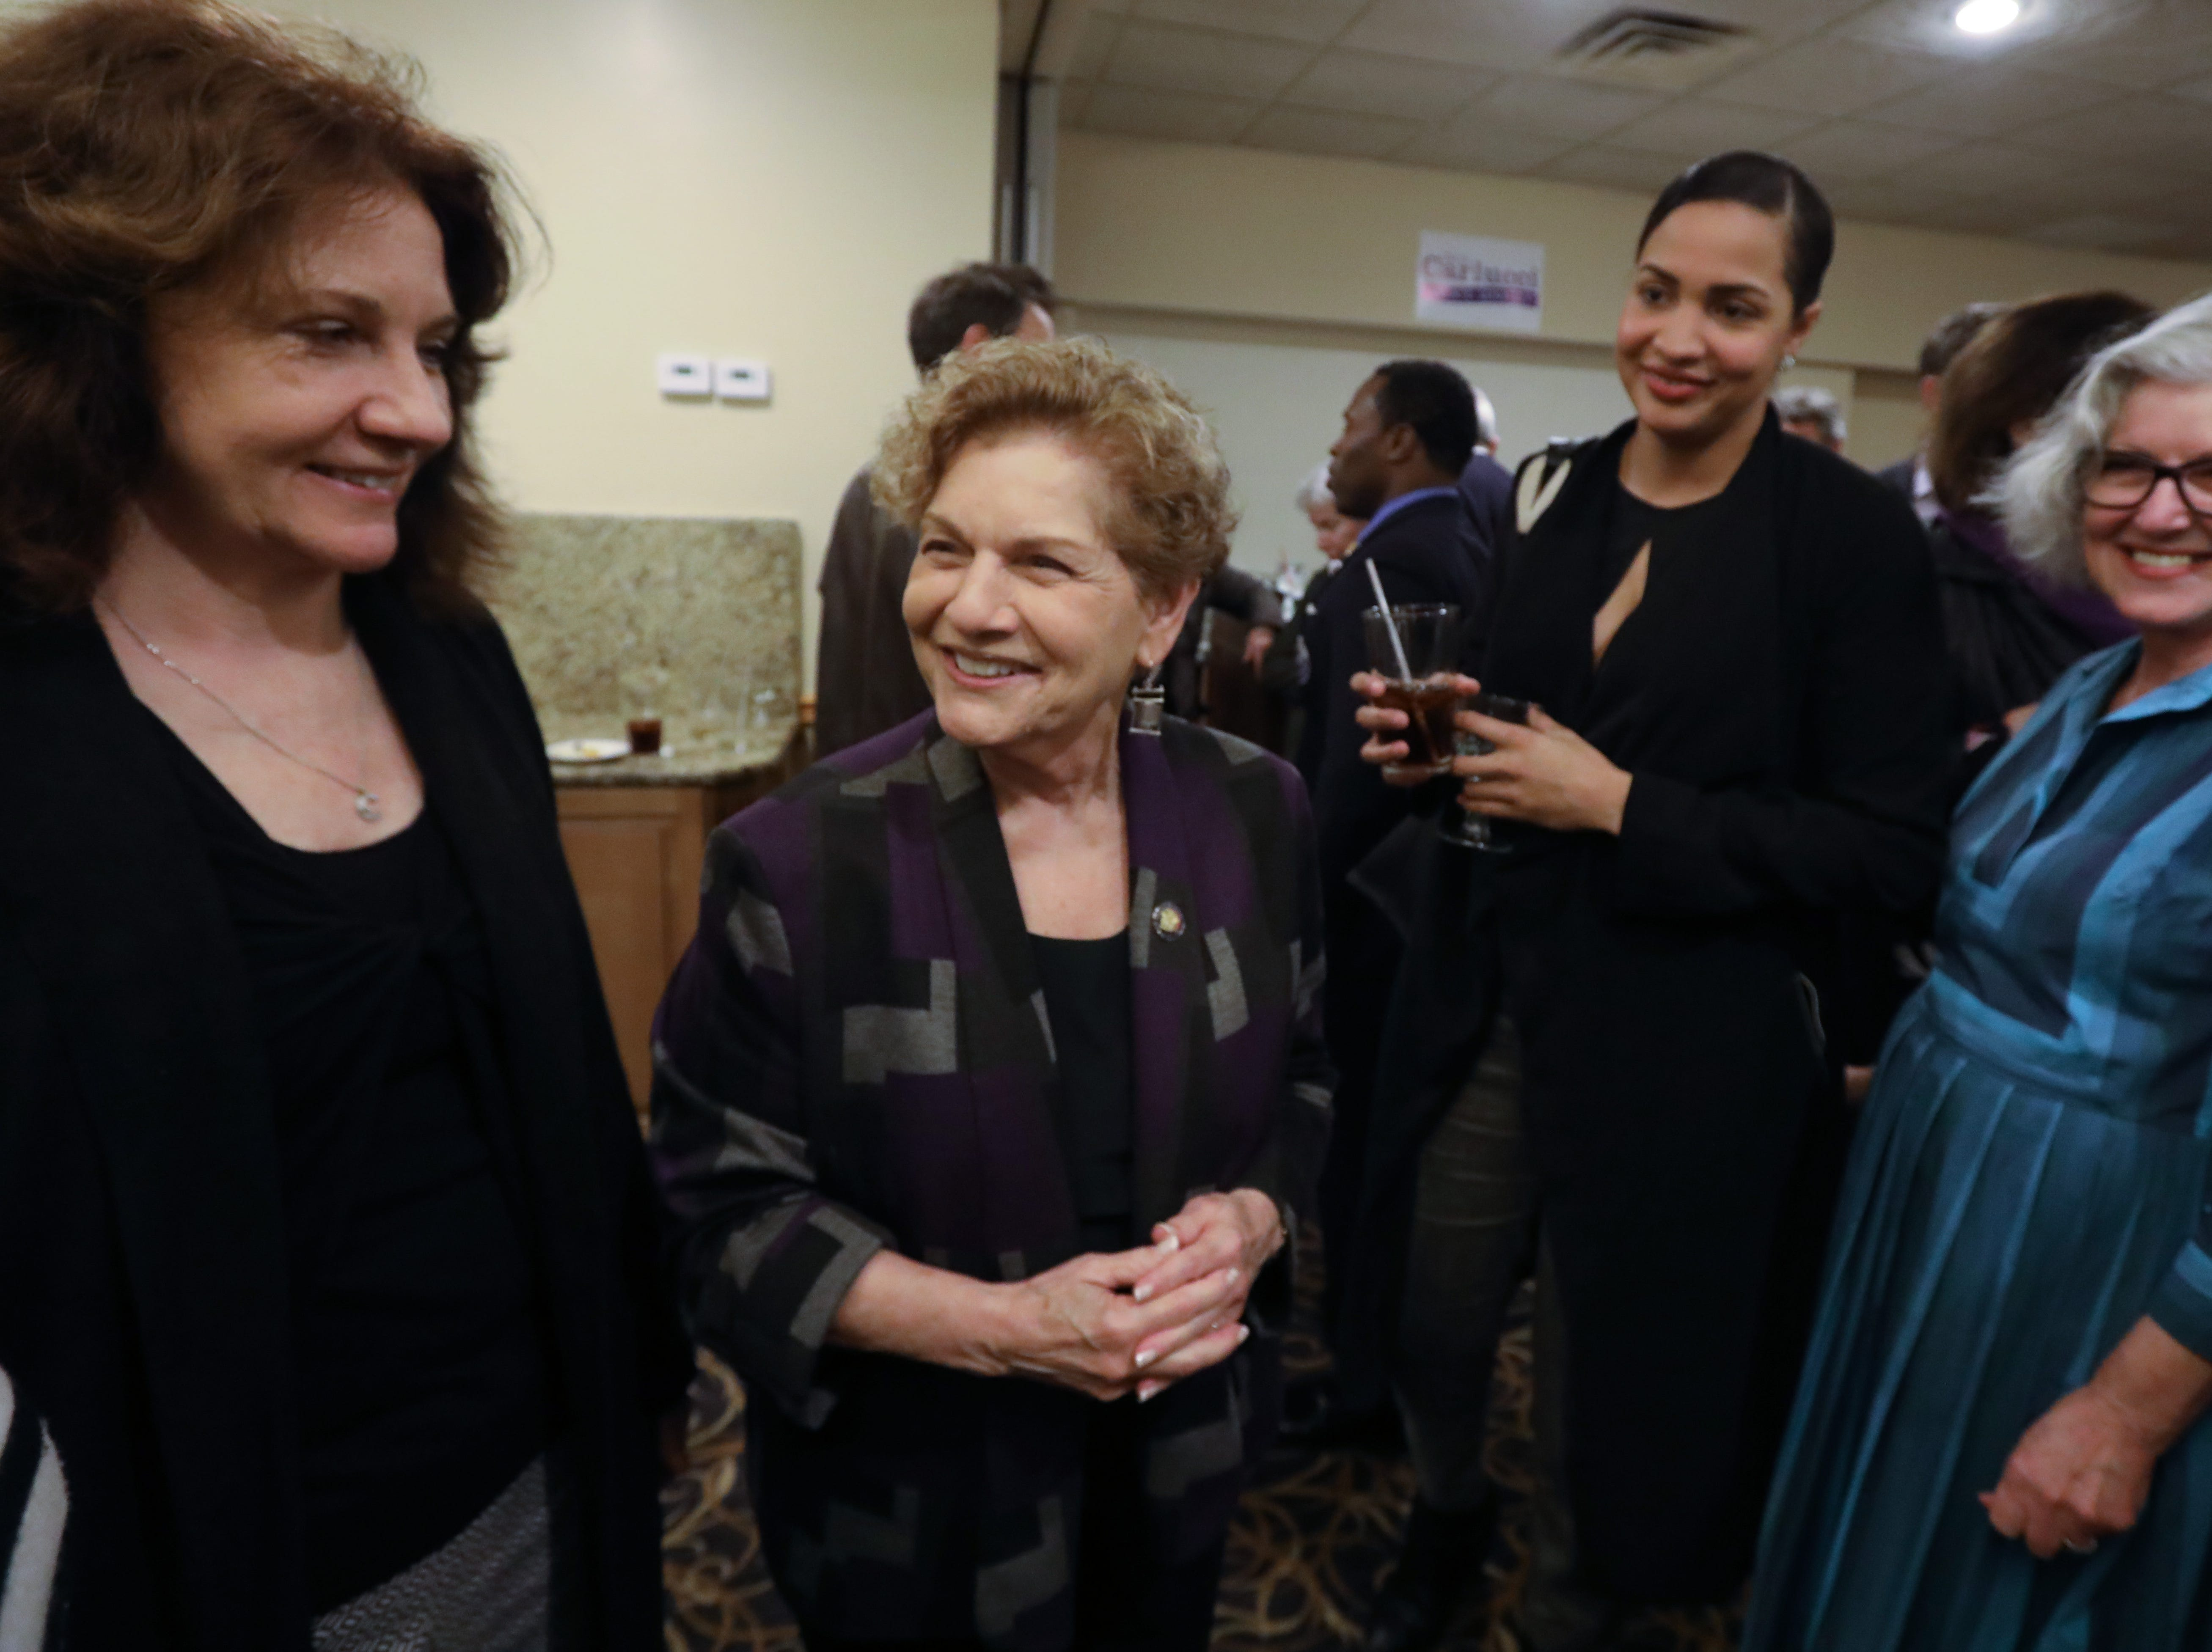 Assemblywoman Ellen Jaffee waits for election results with her staff at Casa Mia in Blauvelt Nov. 6, 2018.